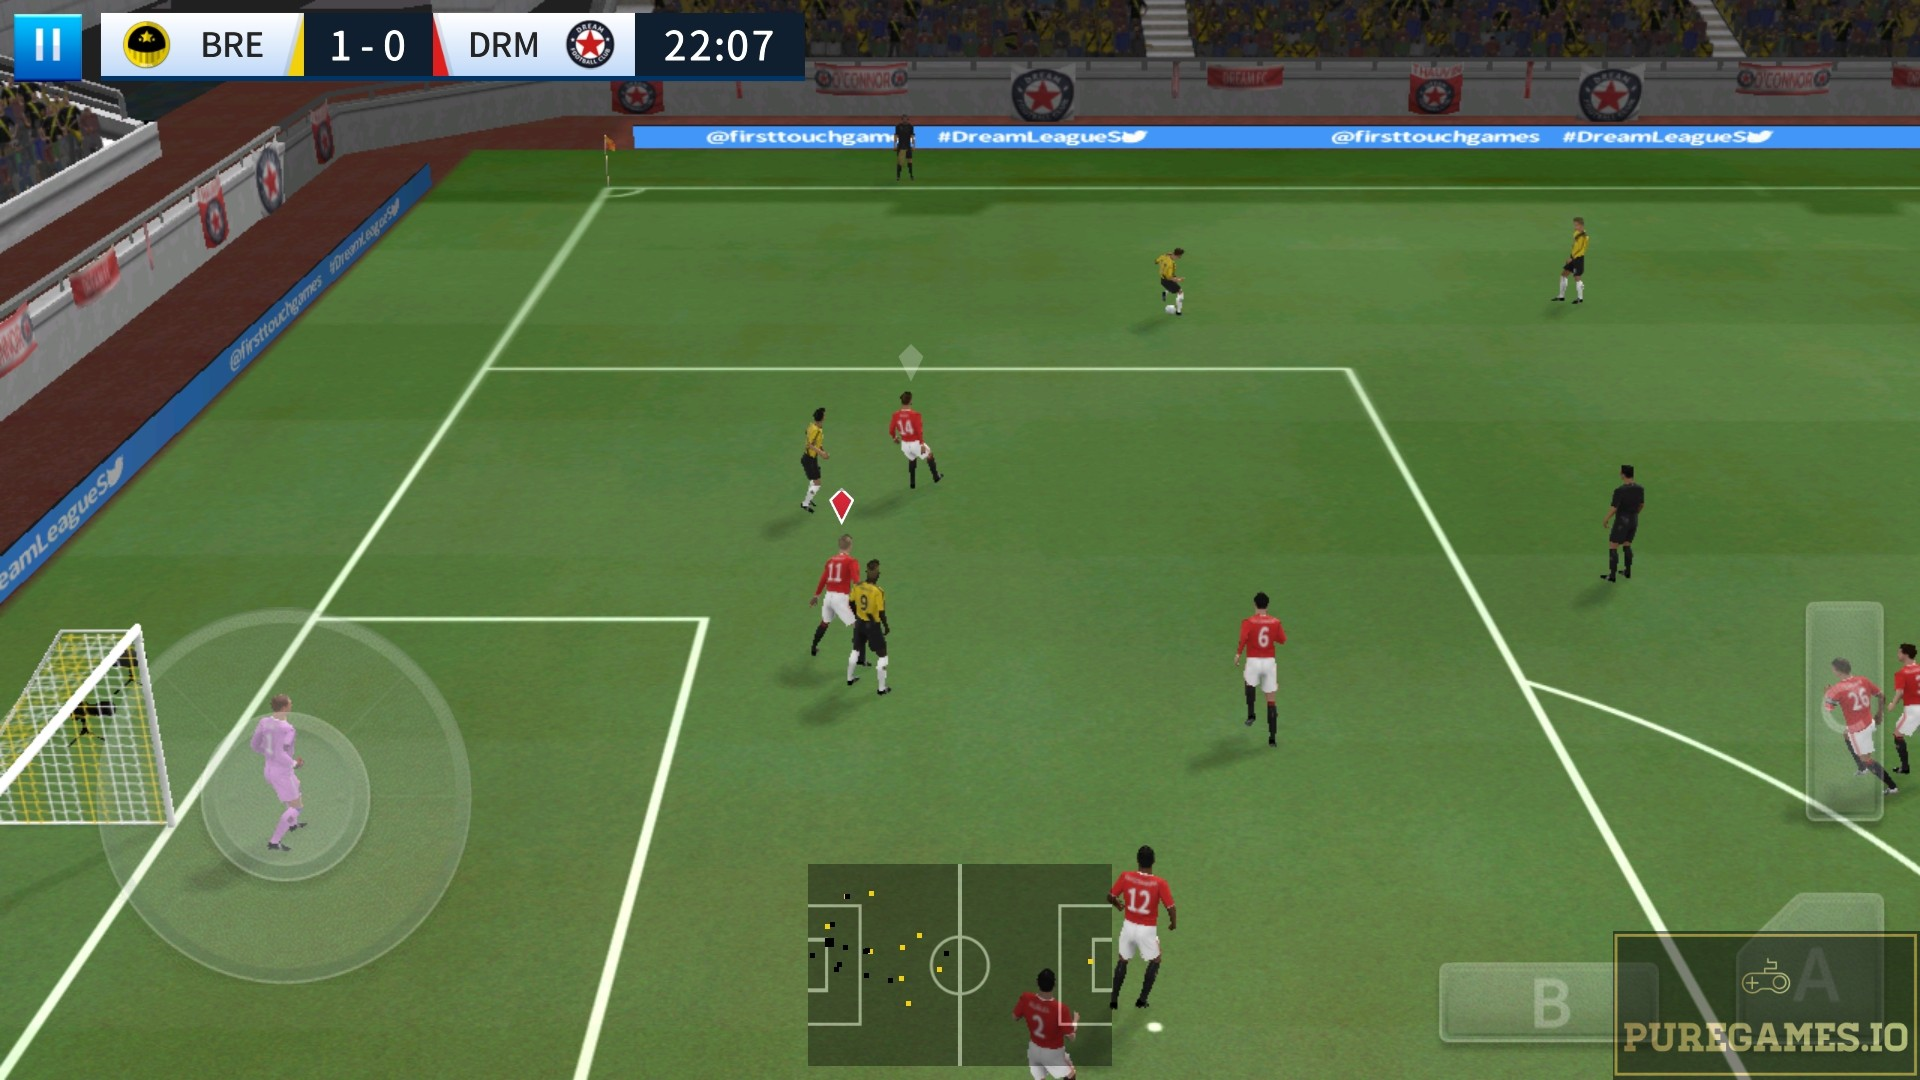 Download Dream League Soccer 2018 APK - For Android/iOS 22